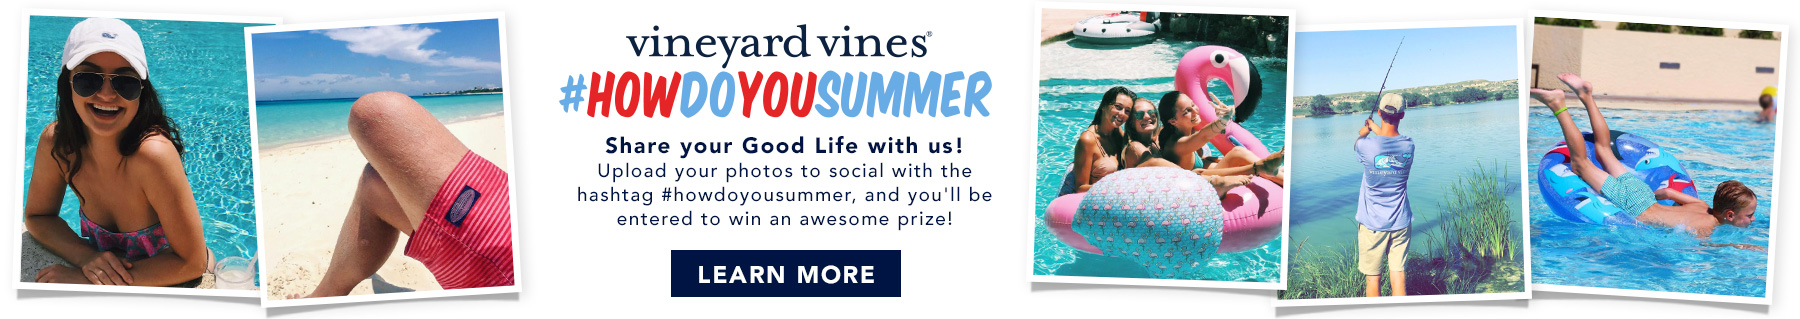 vineyard vines #howdoyousummer Share your good life with us! Upload your photos to socail with the hashtag #howdoyousummer, and you'll be entered to win an awesome prize! Learn more.